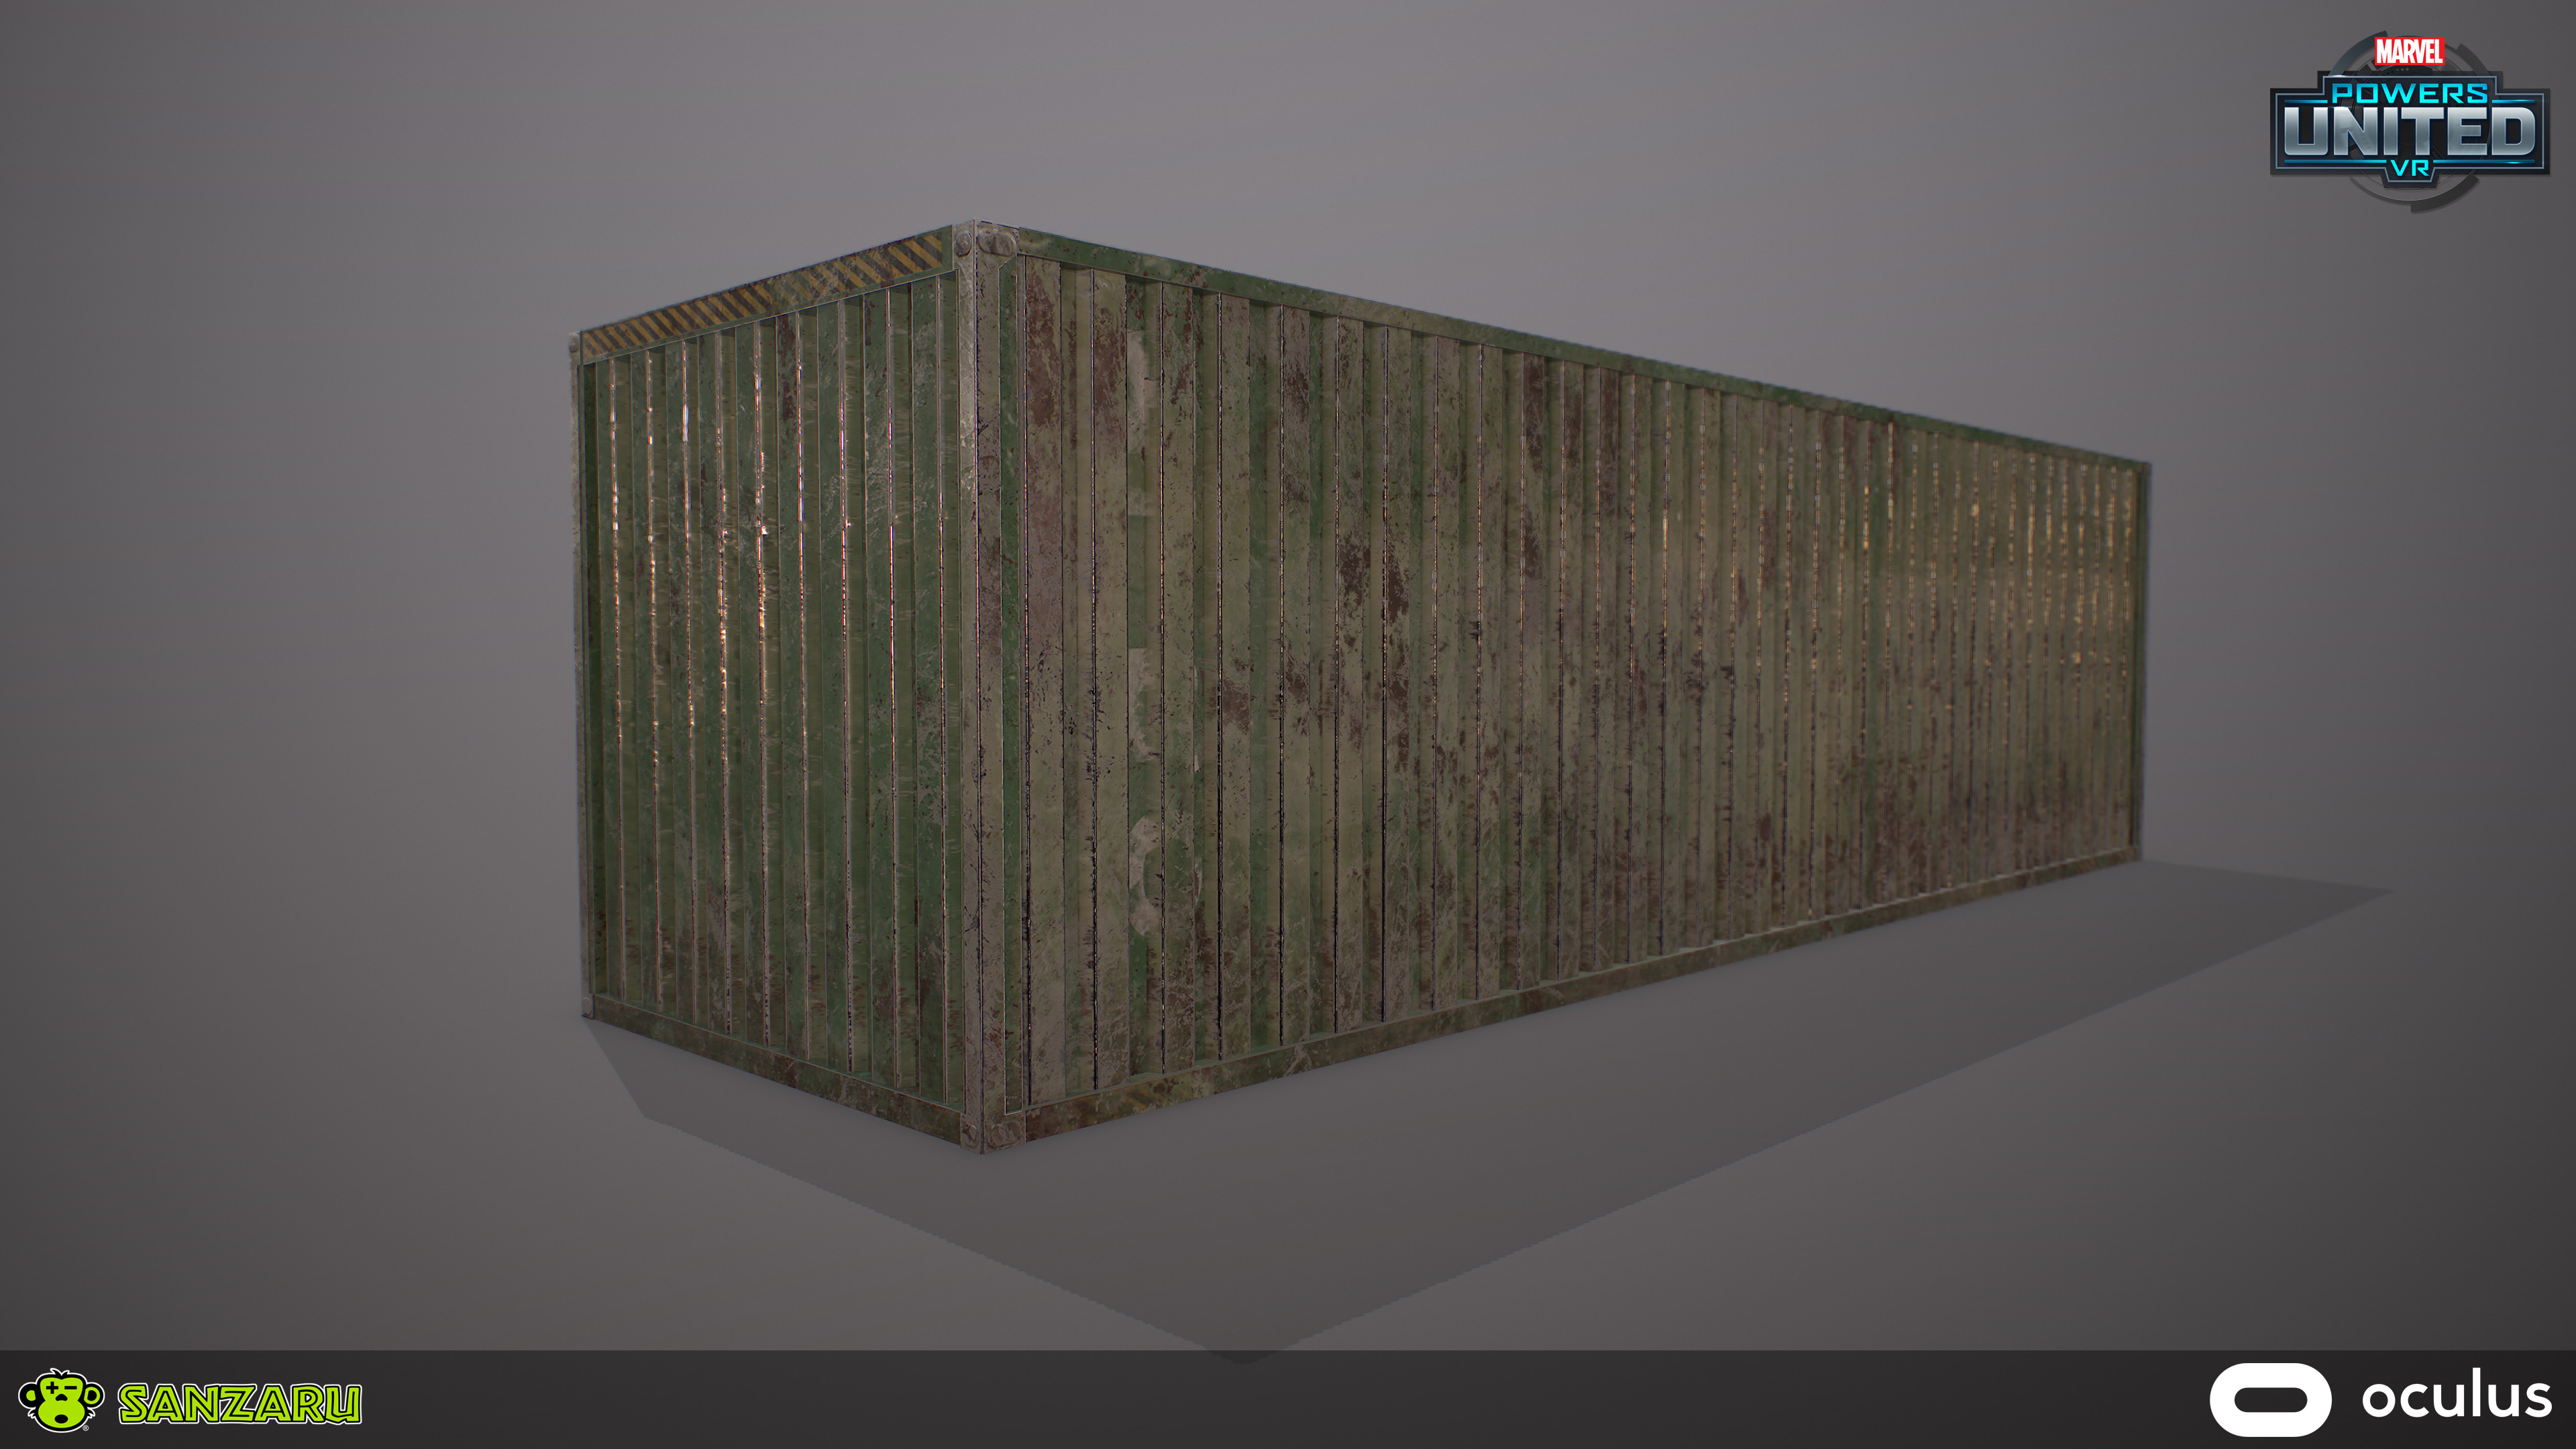 Truck Container -Solo View Modeled in Maya, Baked and Textured in Substance Painter